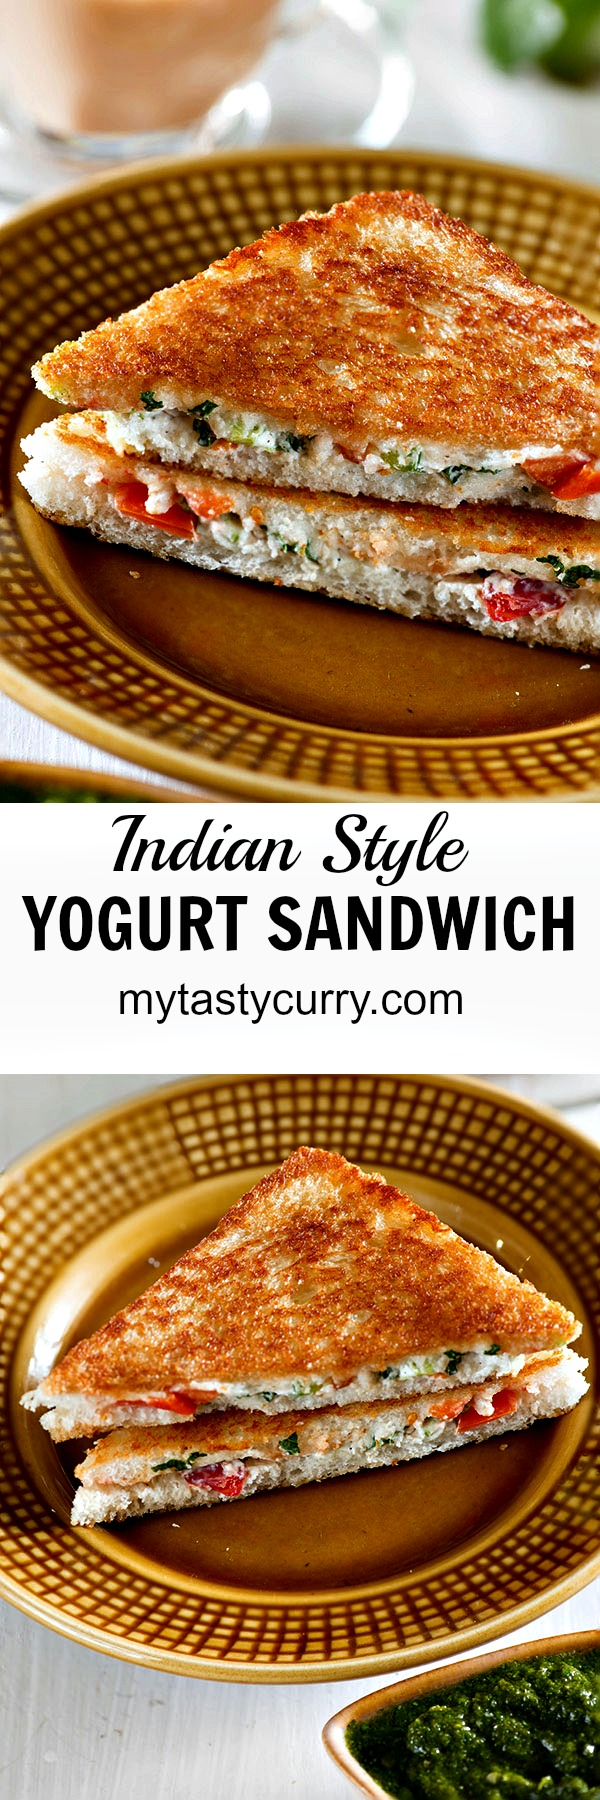 Curd sandwich or yogurt sandwich is healthy Indian sandwich recipe. Hung curd, mixed with colorful vegetables seasonings and cheese makes an excellent sandwich filling.